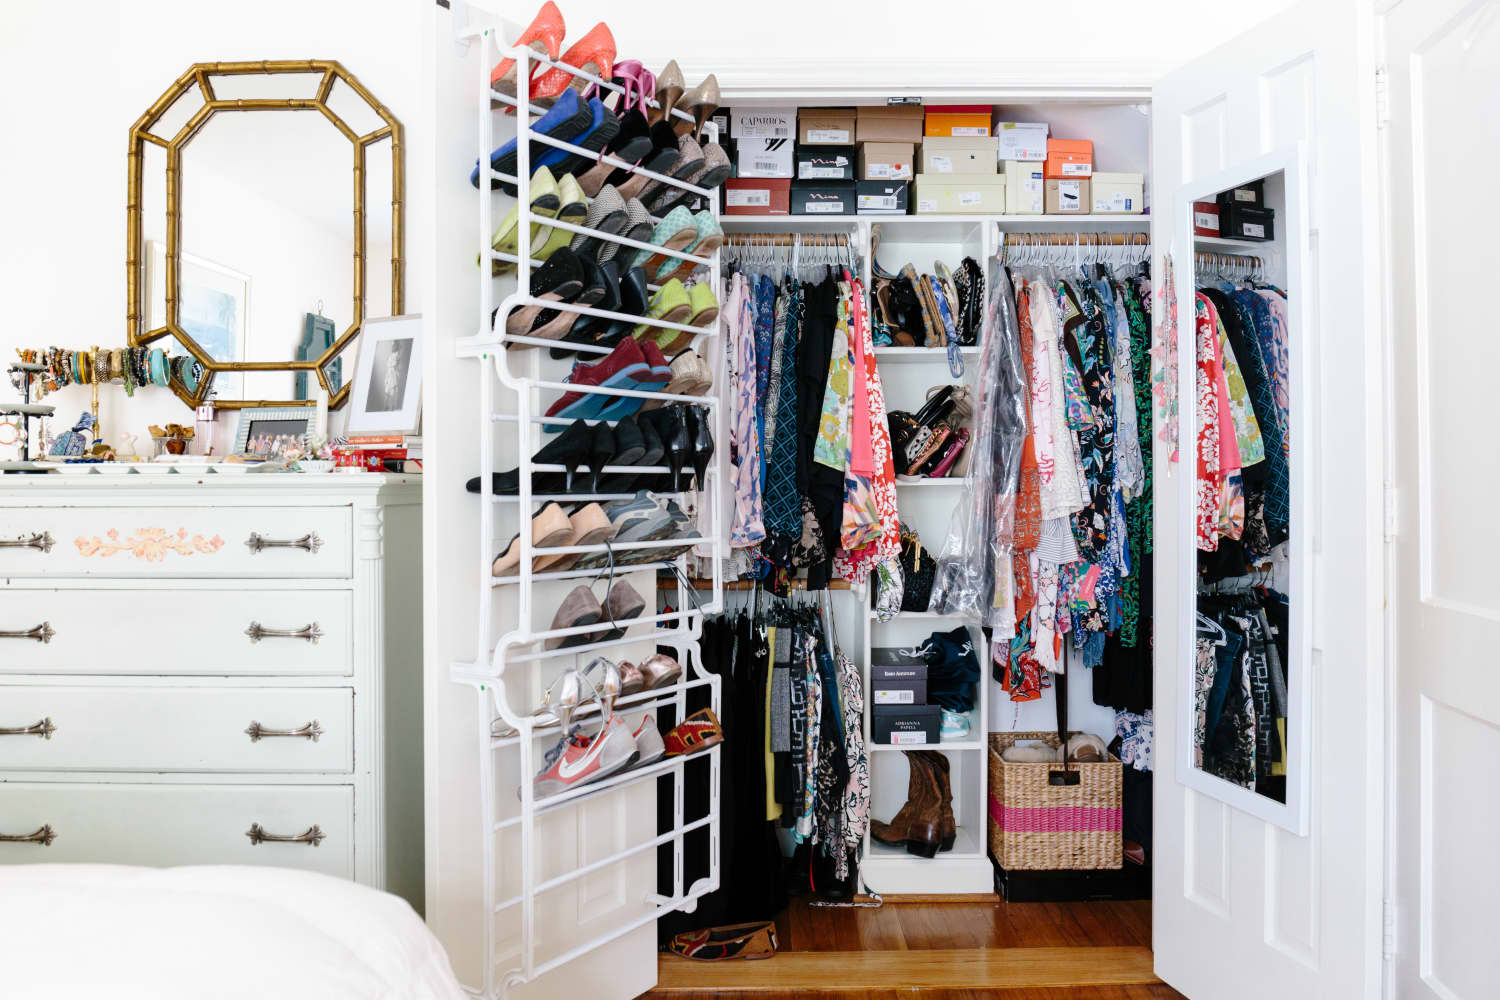 This Is the Closet Storage Spot You're Probably Overlooking